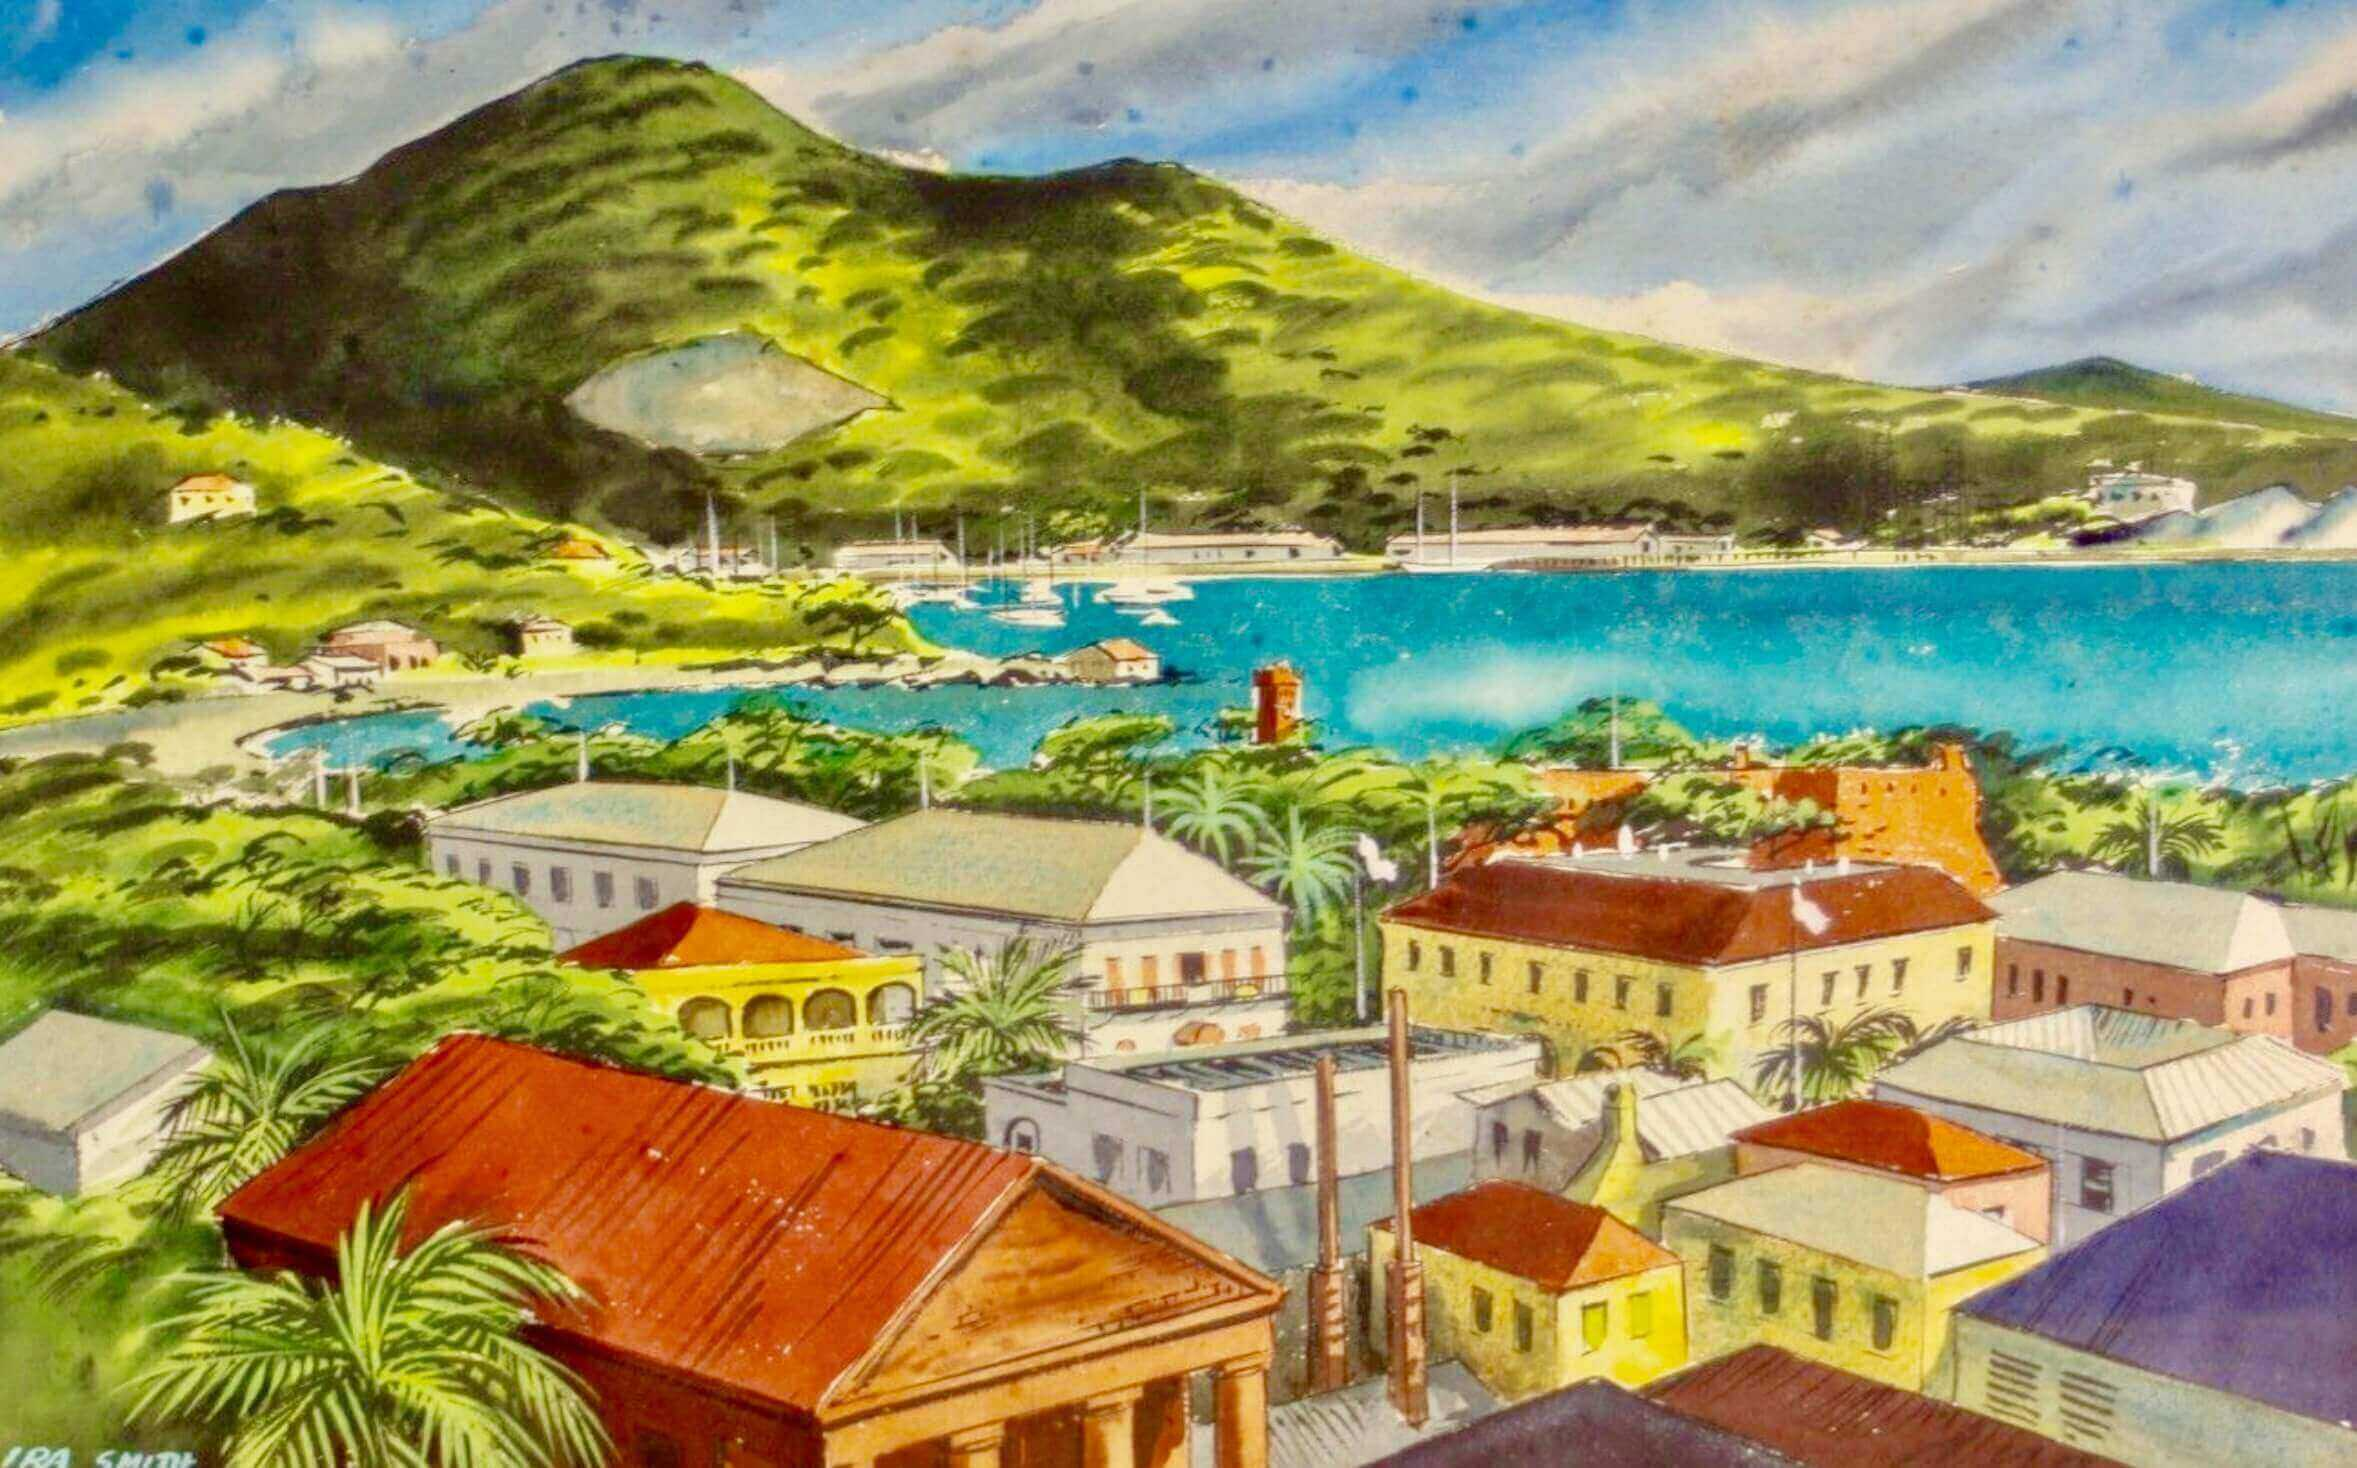 Ira Harrington Smith, St. Thomas, US Virgin Islands Paintings